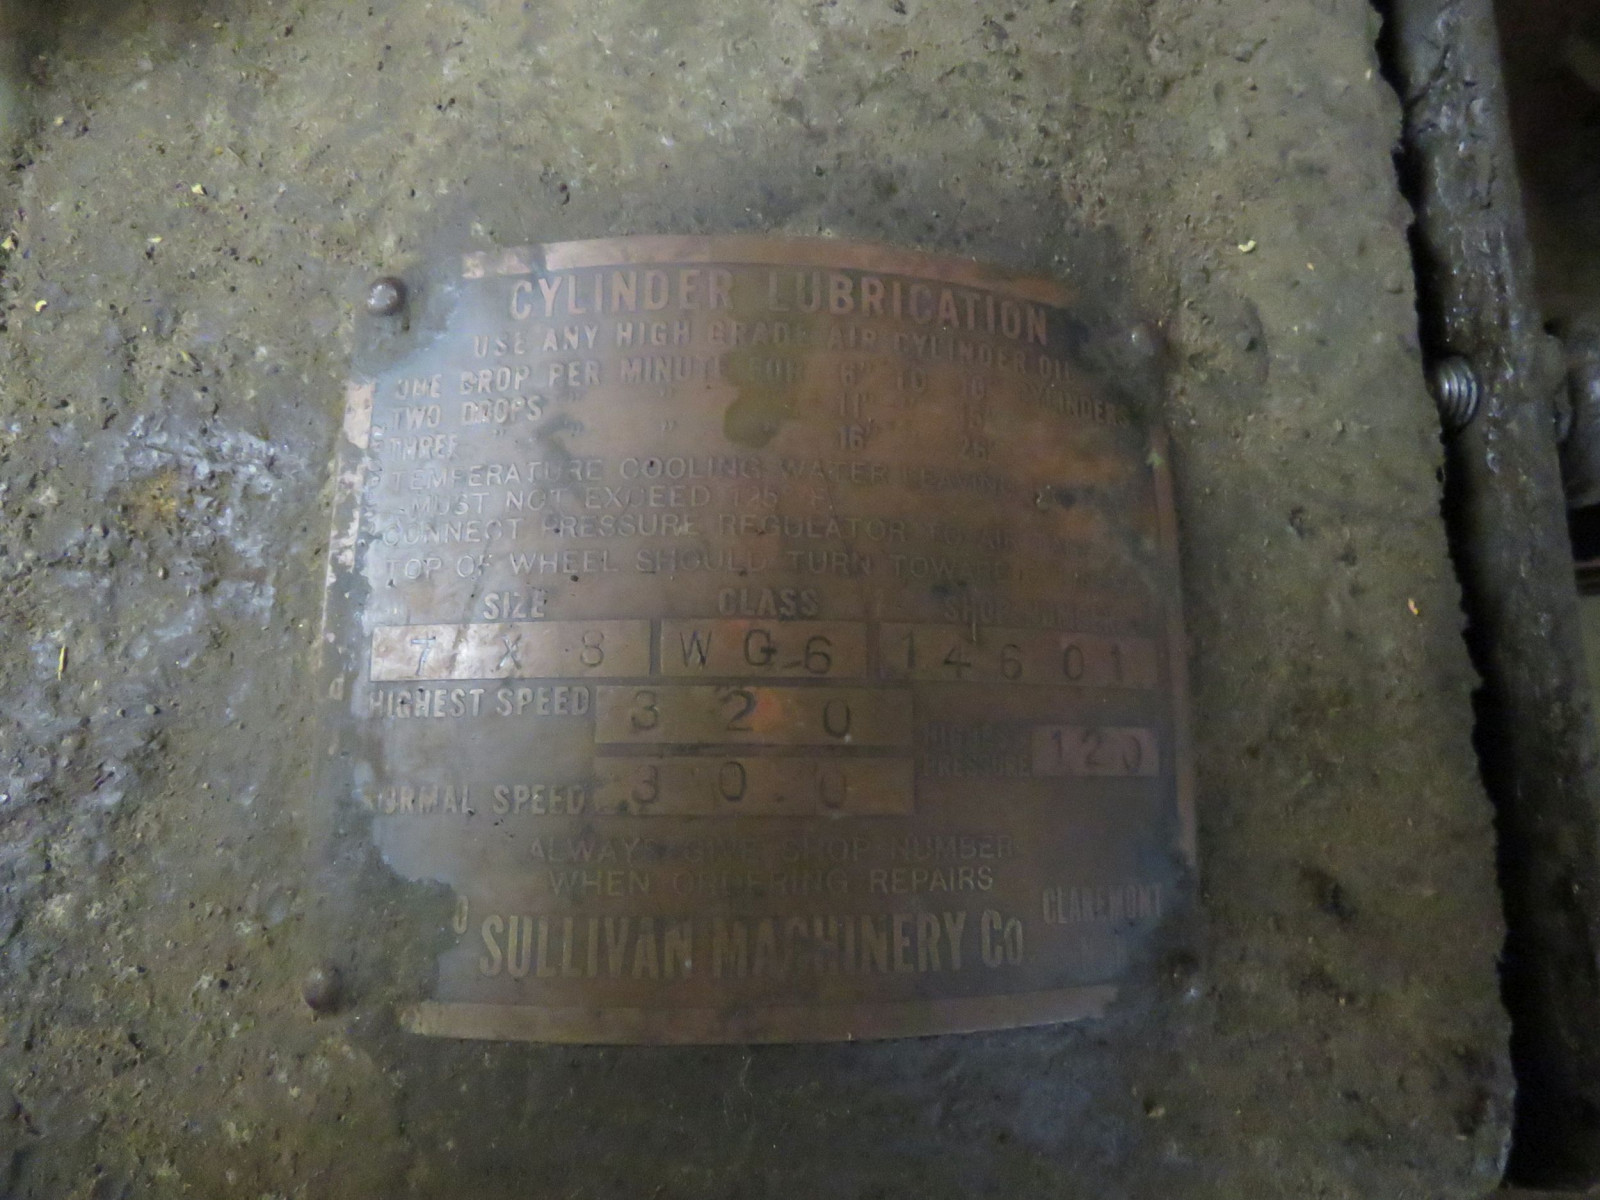 Sullivan Machinery Company Stationary Engine - Image 5